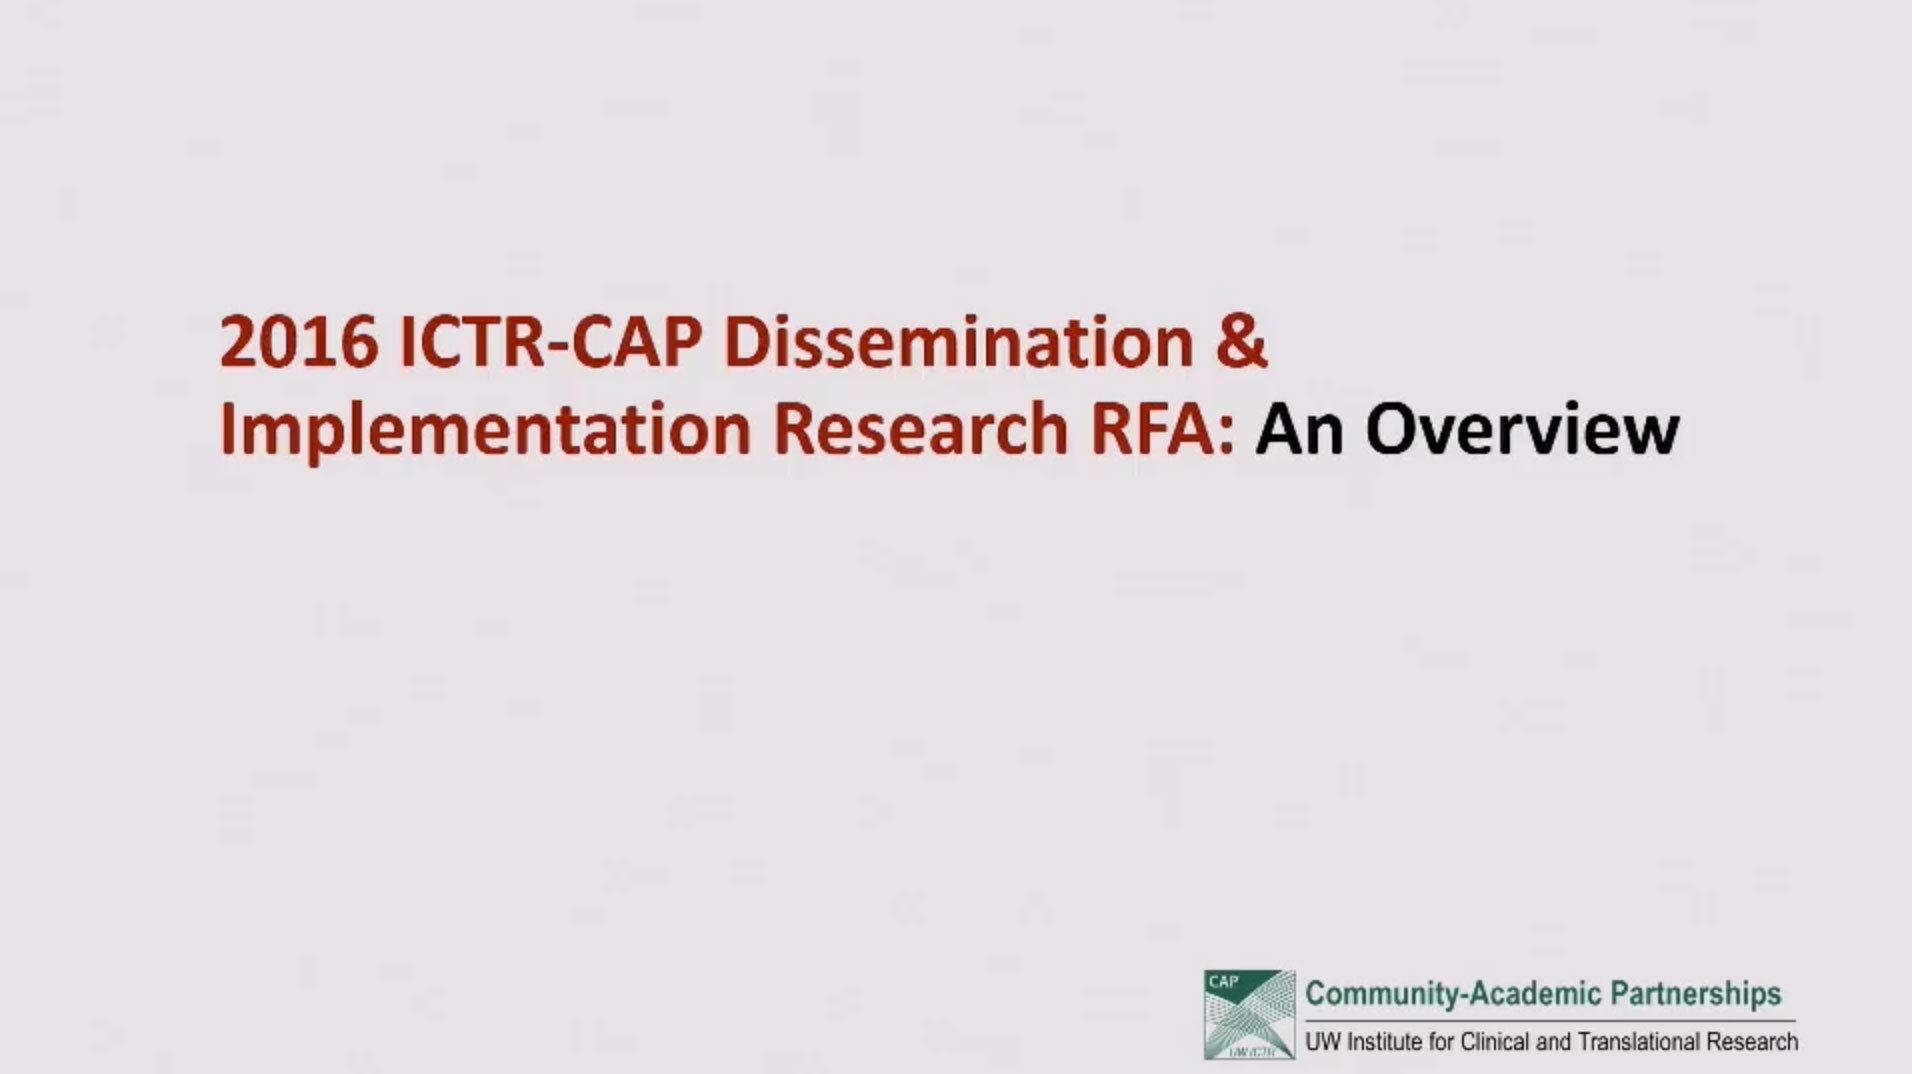 Picture from 2016 ICTR-CAP Dissemination & Implementation Research RFA: An Overview video